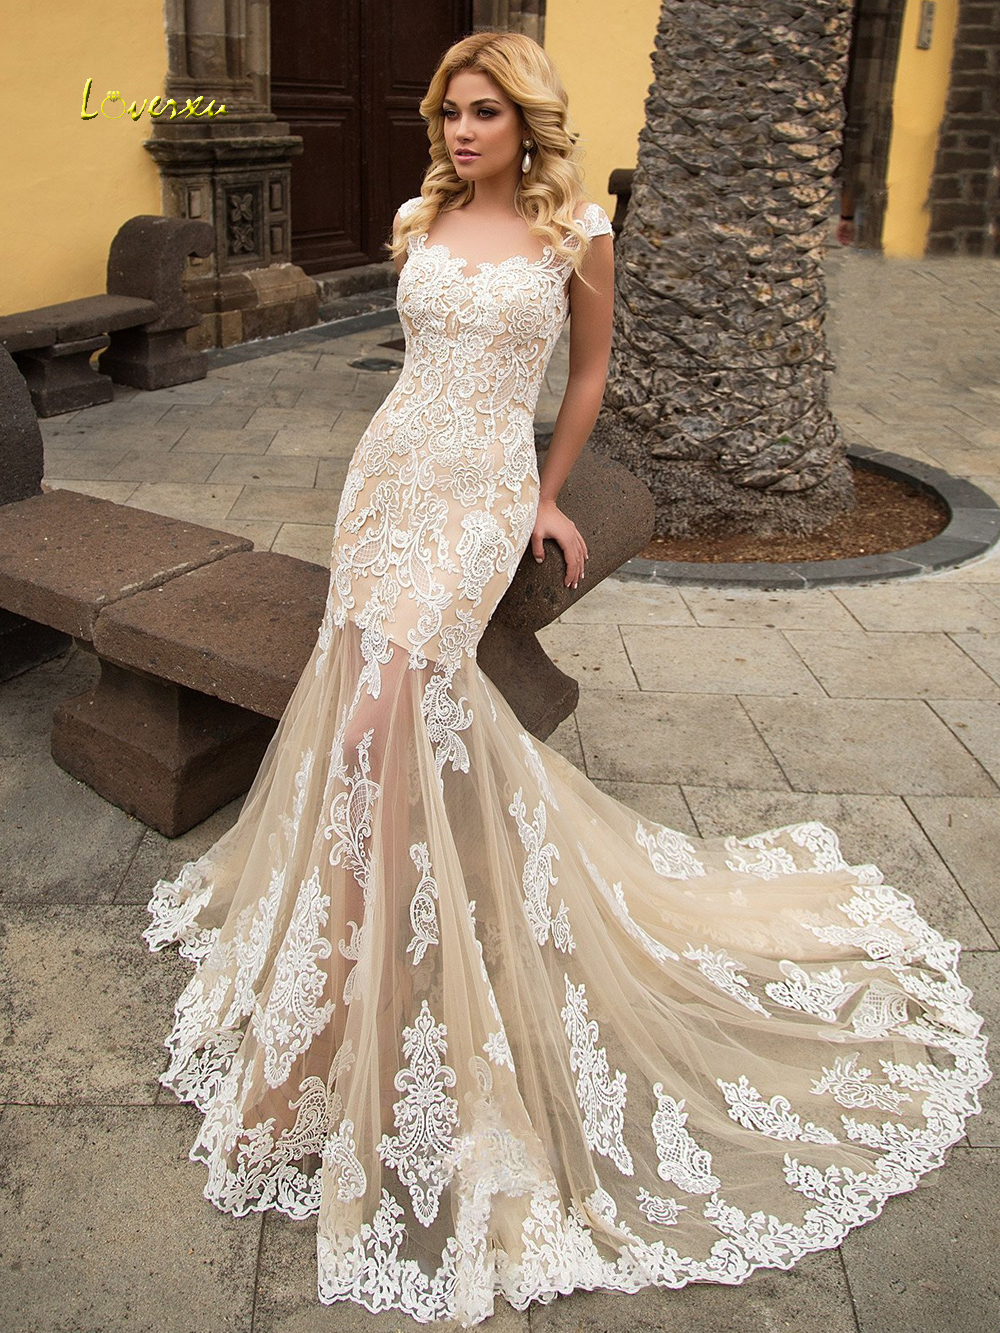 Loverxu Sexy Illusion Scoop Neck Lace Mermaid Wedding Dress 2019 Appliques Cap Sleeve Court Train Trumpet Bridal Gowns Plus Size